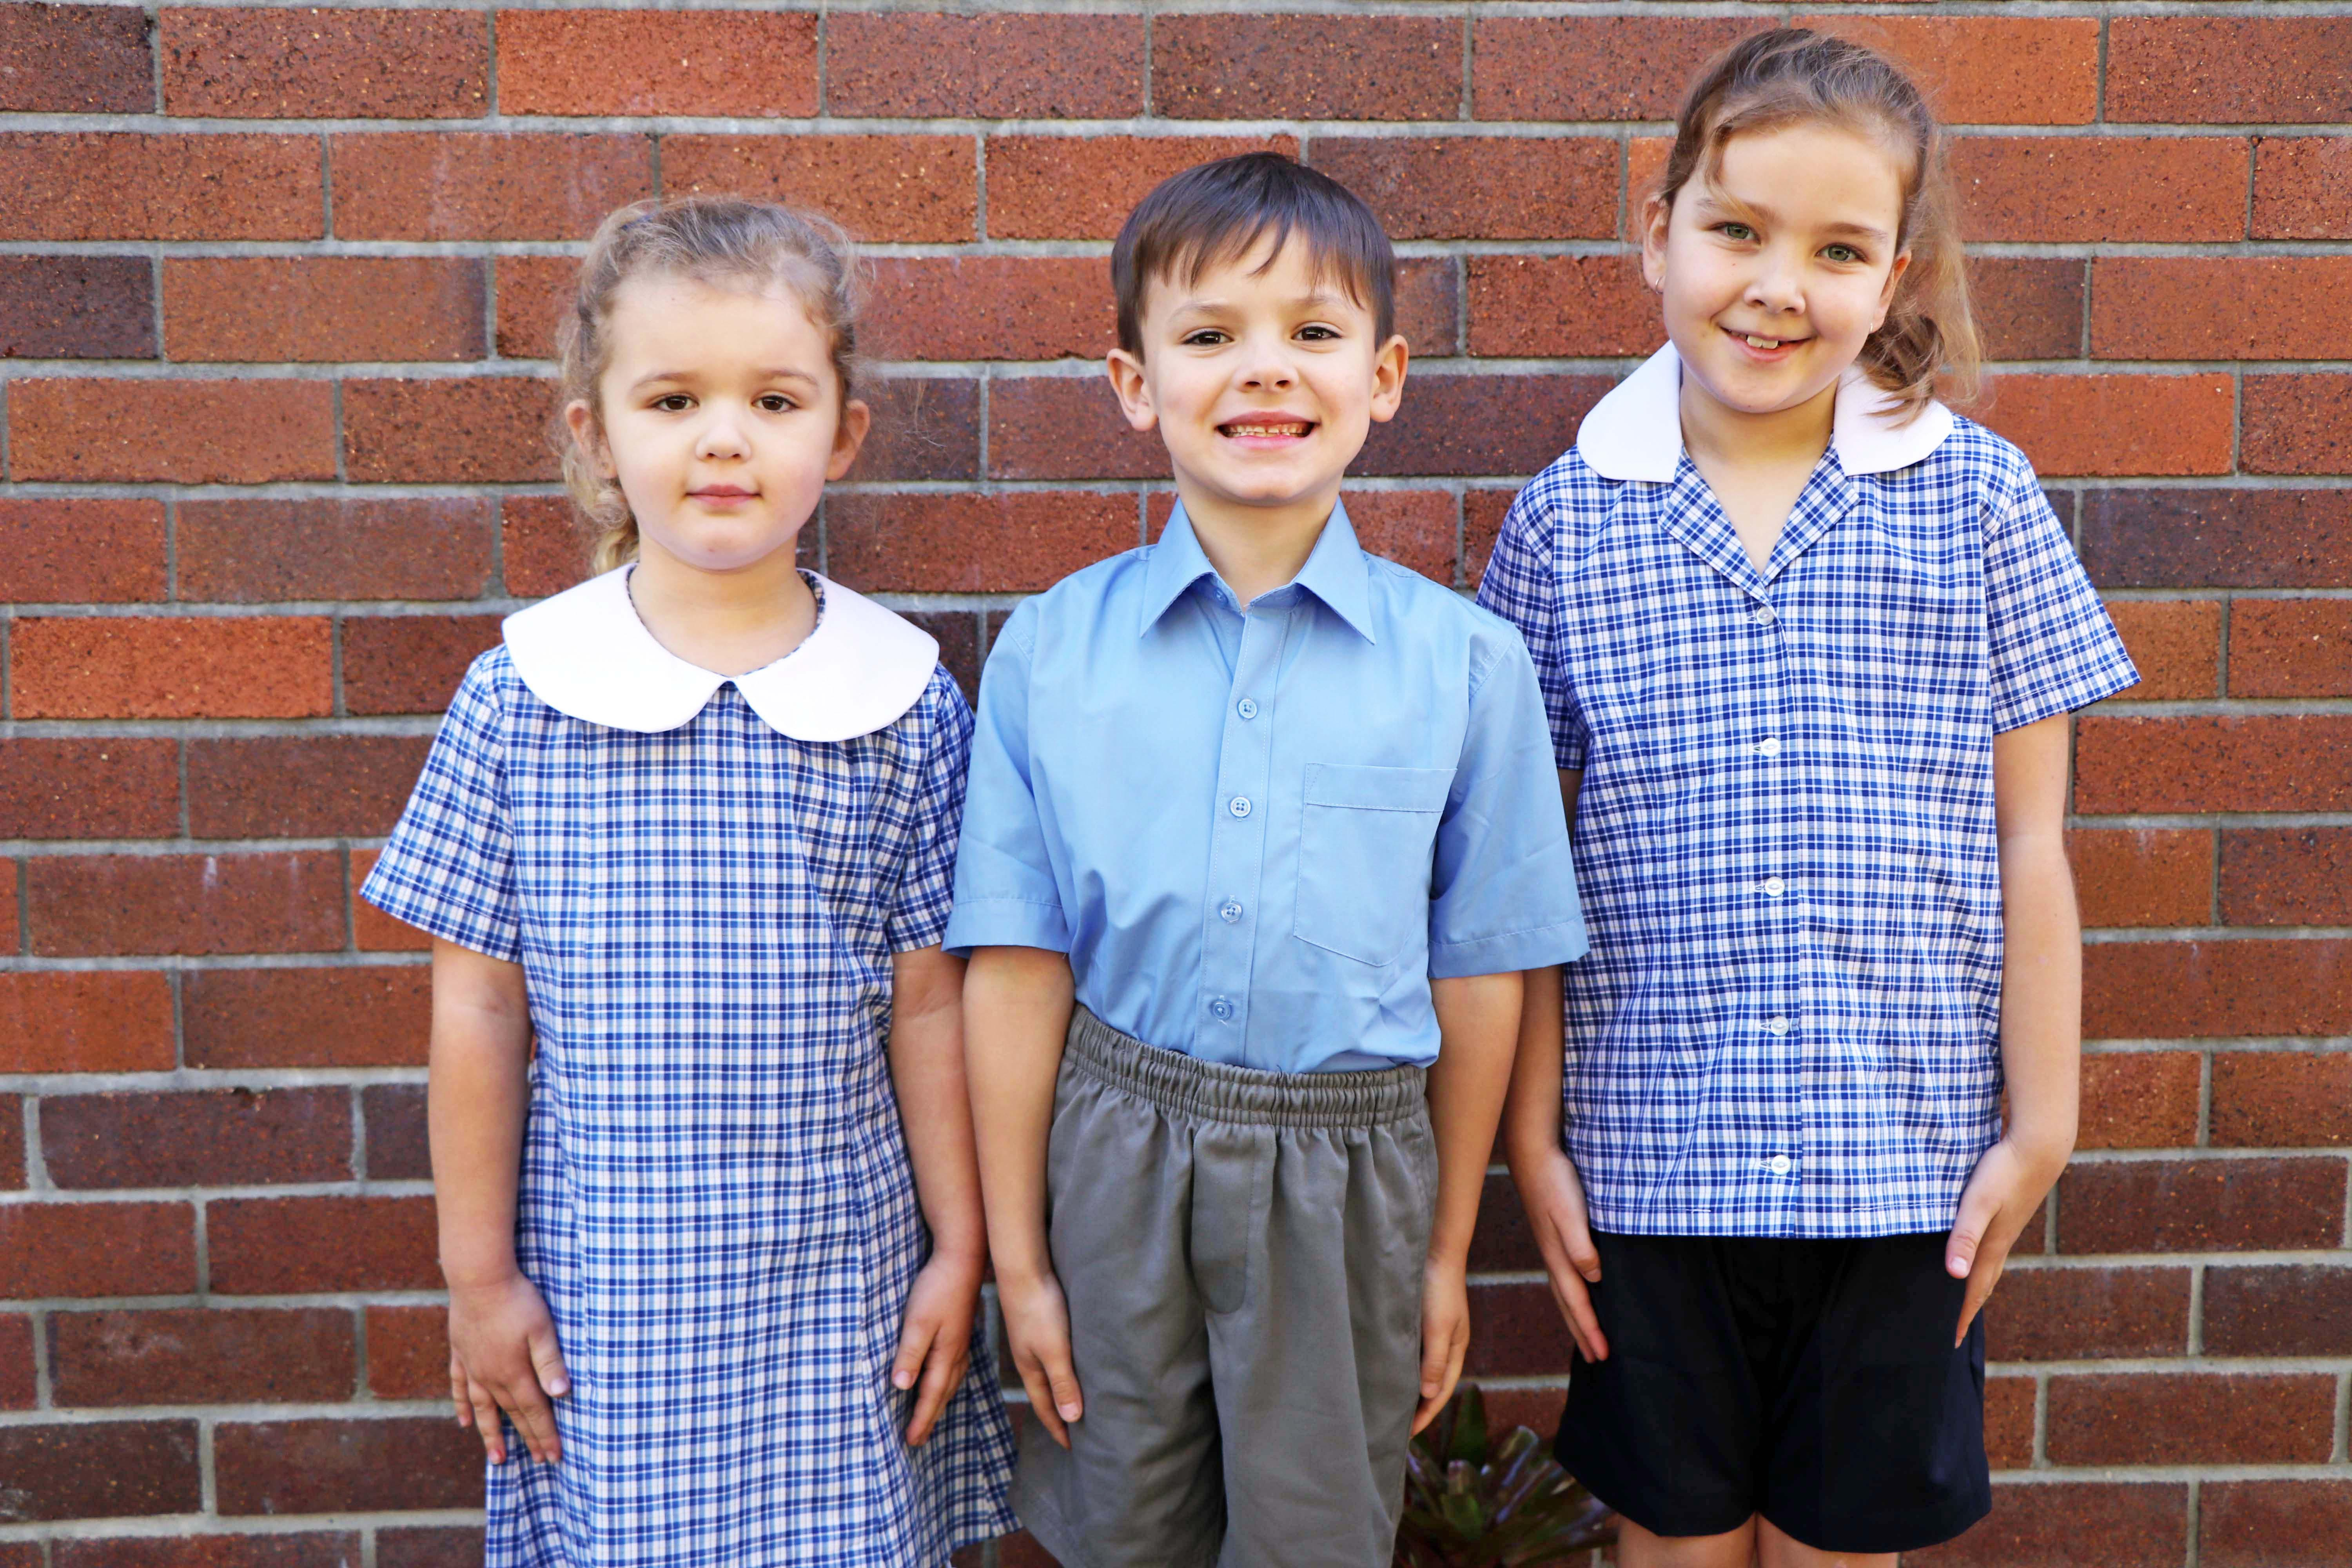 Students uniforms